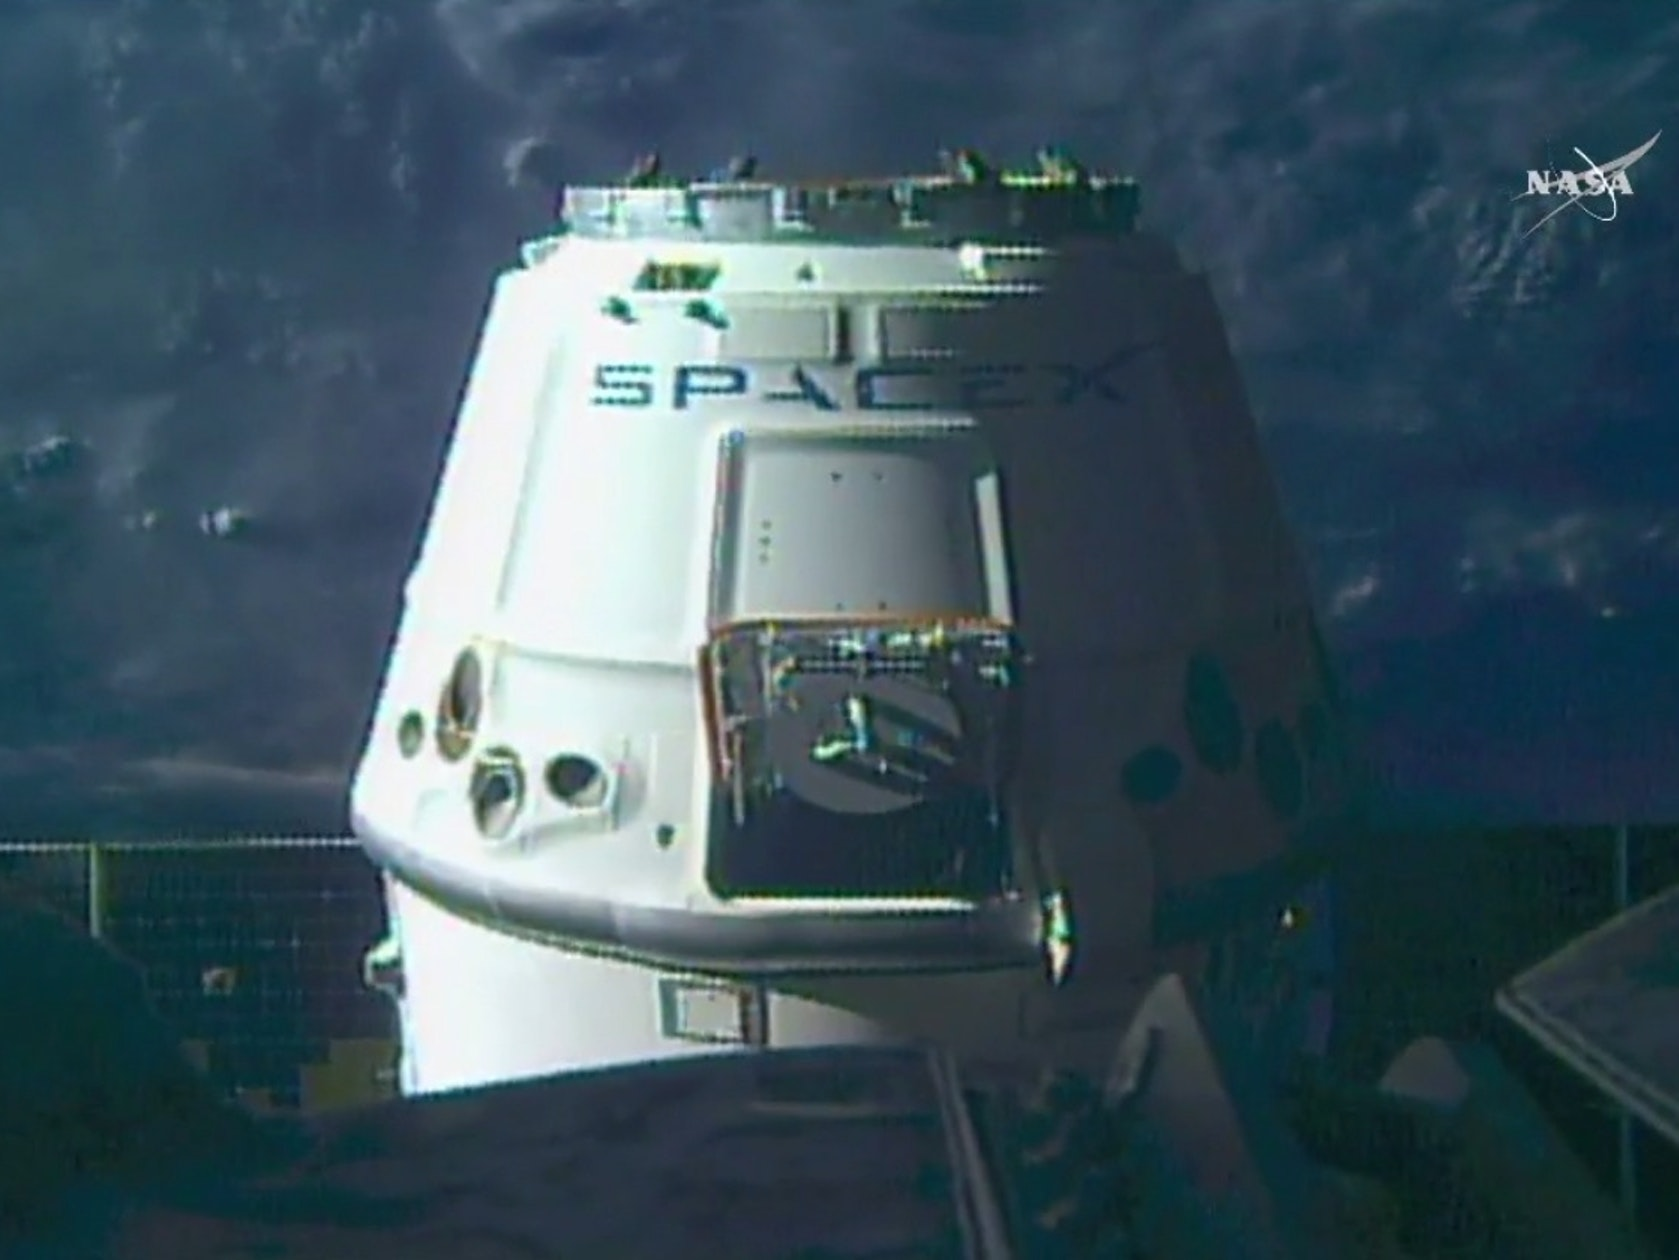 SpaceX Finally Gets its Dragon Vehicle to the Space Station